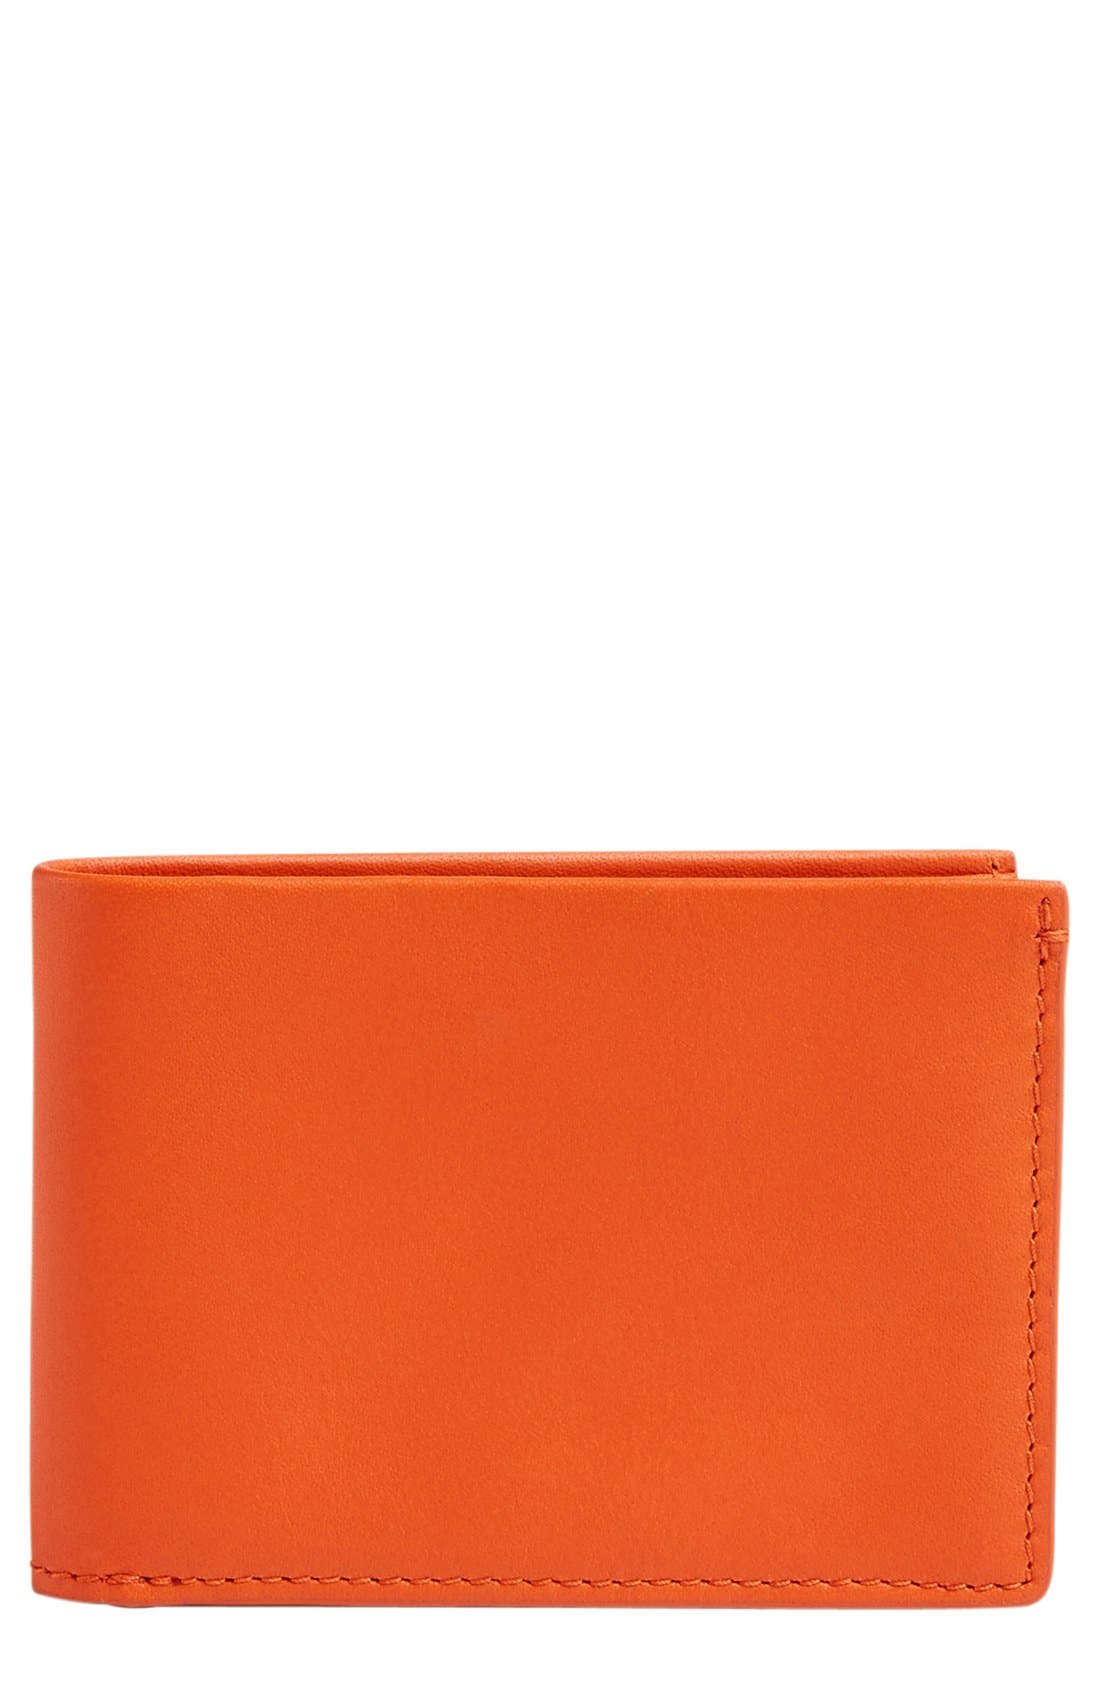 'Ambold' Leather Wallet,                         Main,                         color, Bright Orange